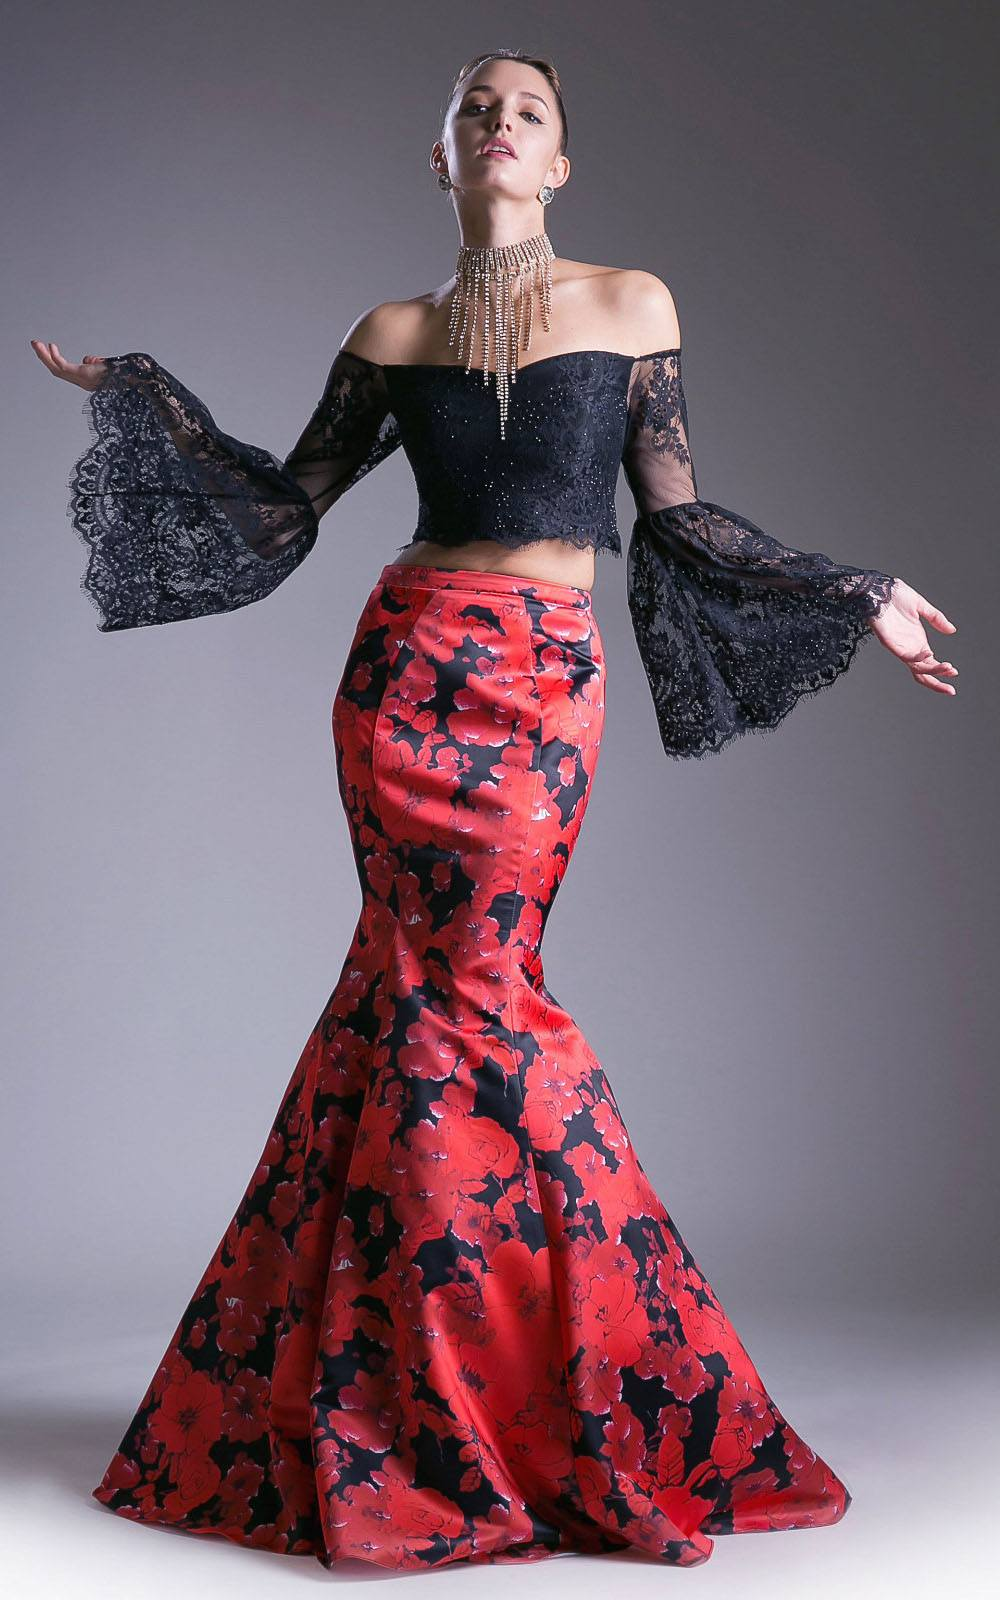 b2f0435964e Print Skirt Off-Shoulder Two-Piece Prom Gown Bell Sleeves. Touch to zoom